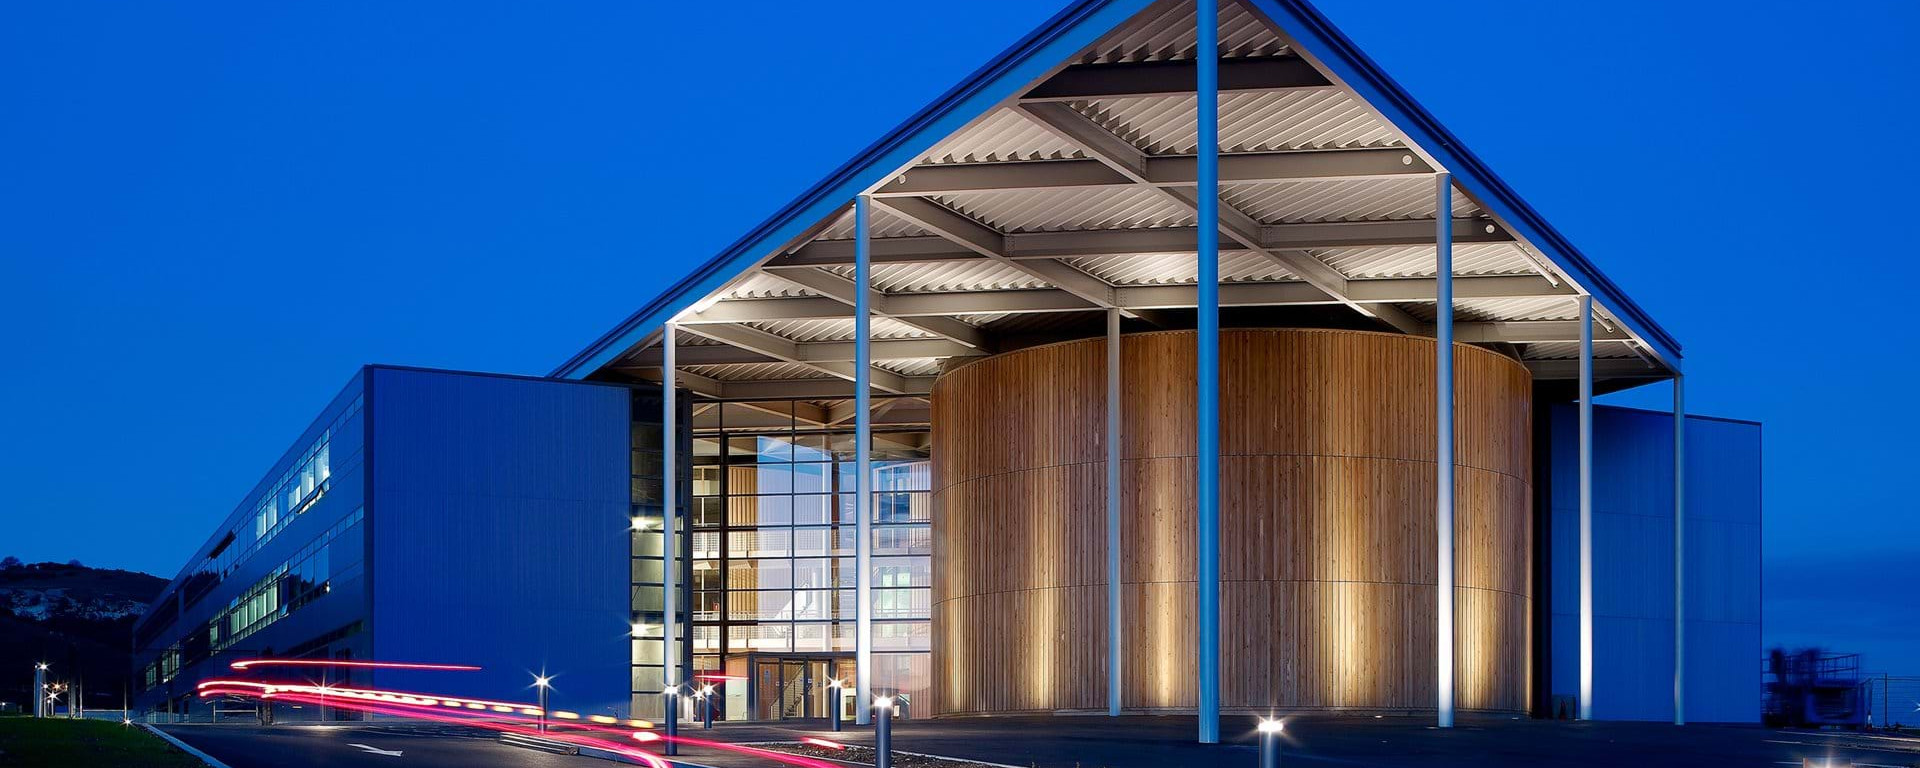 School Architecture Folkestone Academy by Foster + Partners